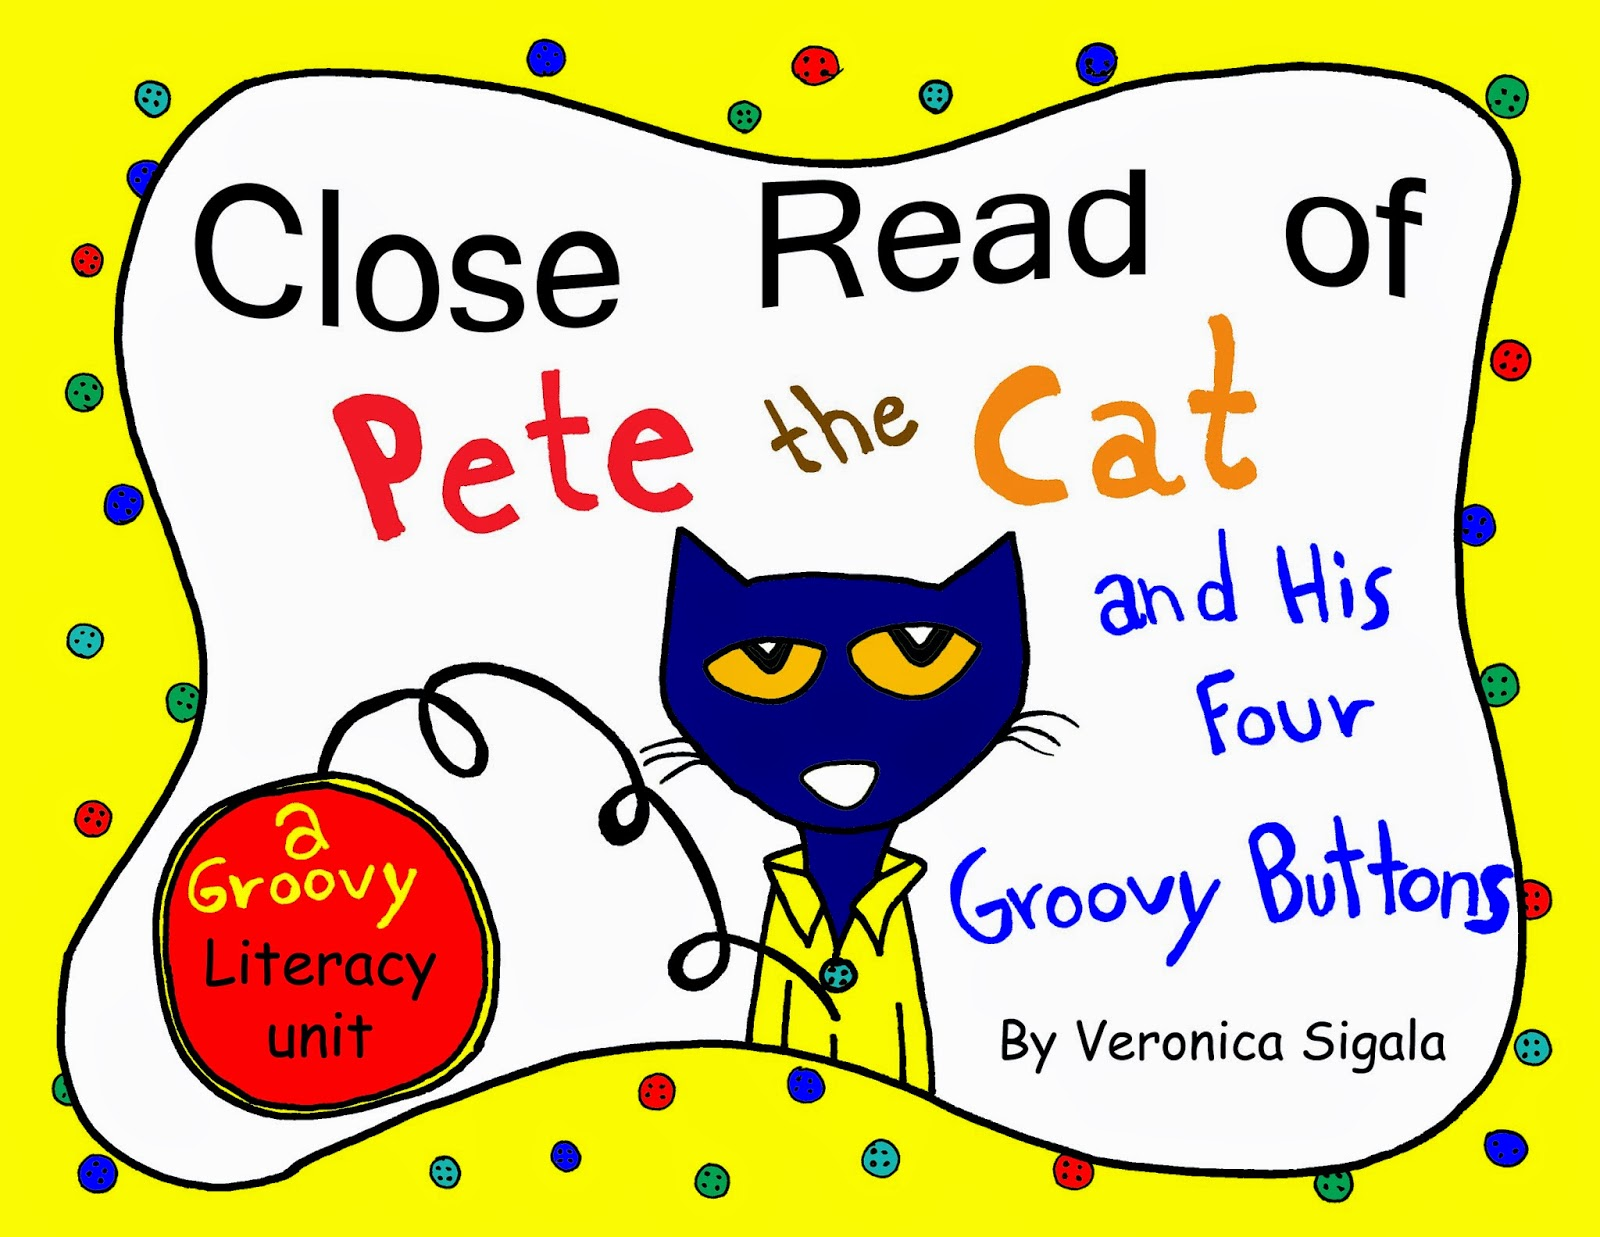 The Teaching Gal Pete The Cat And His Four Groovy Buttons